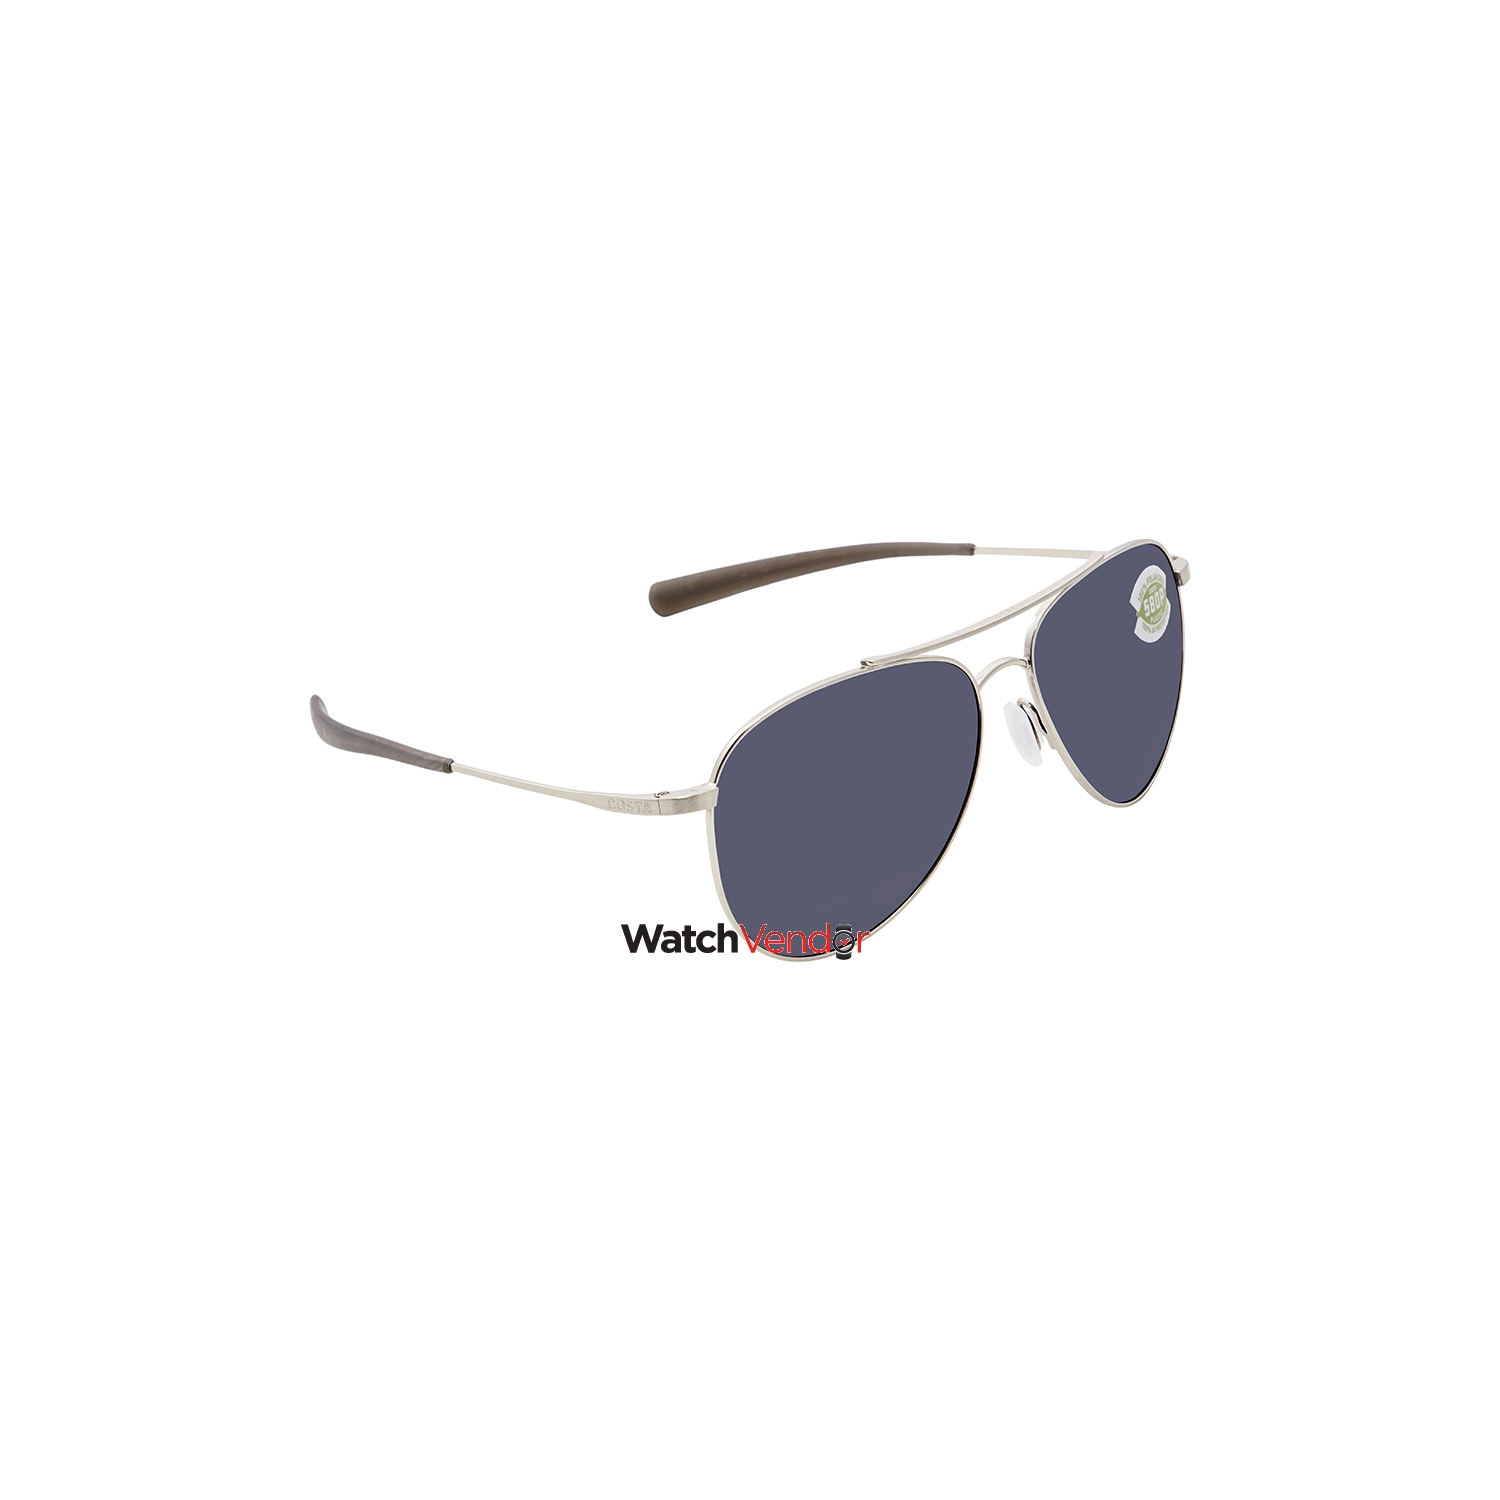 8563cbae7e4 Costa Del Mar Cook Grey 580P Aviator Sunglasses COO 21 OGP - Online Only